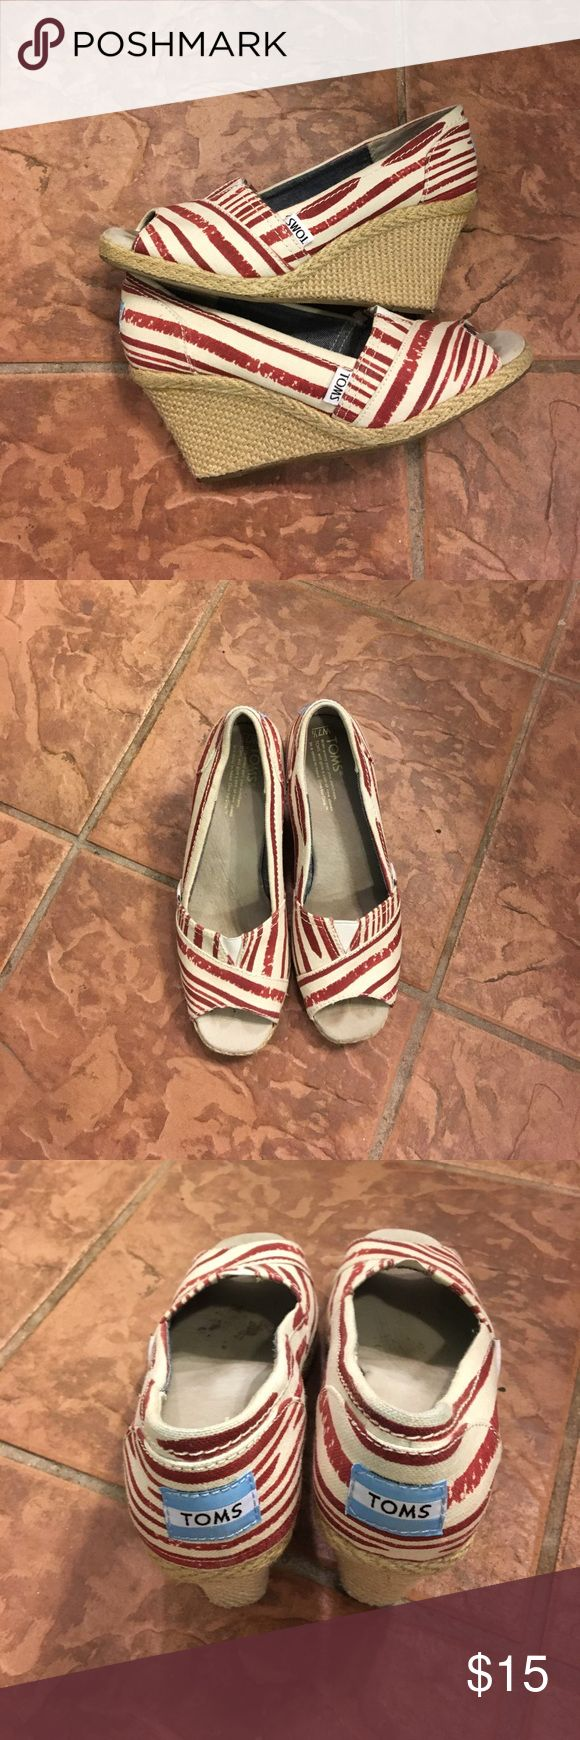 Tom's peep toe wedge sandal shoe Minimally worn red beige striped print on canvas . Jute on wedge toms Shoes Wedges